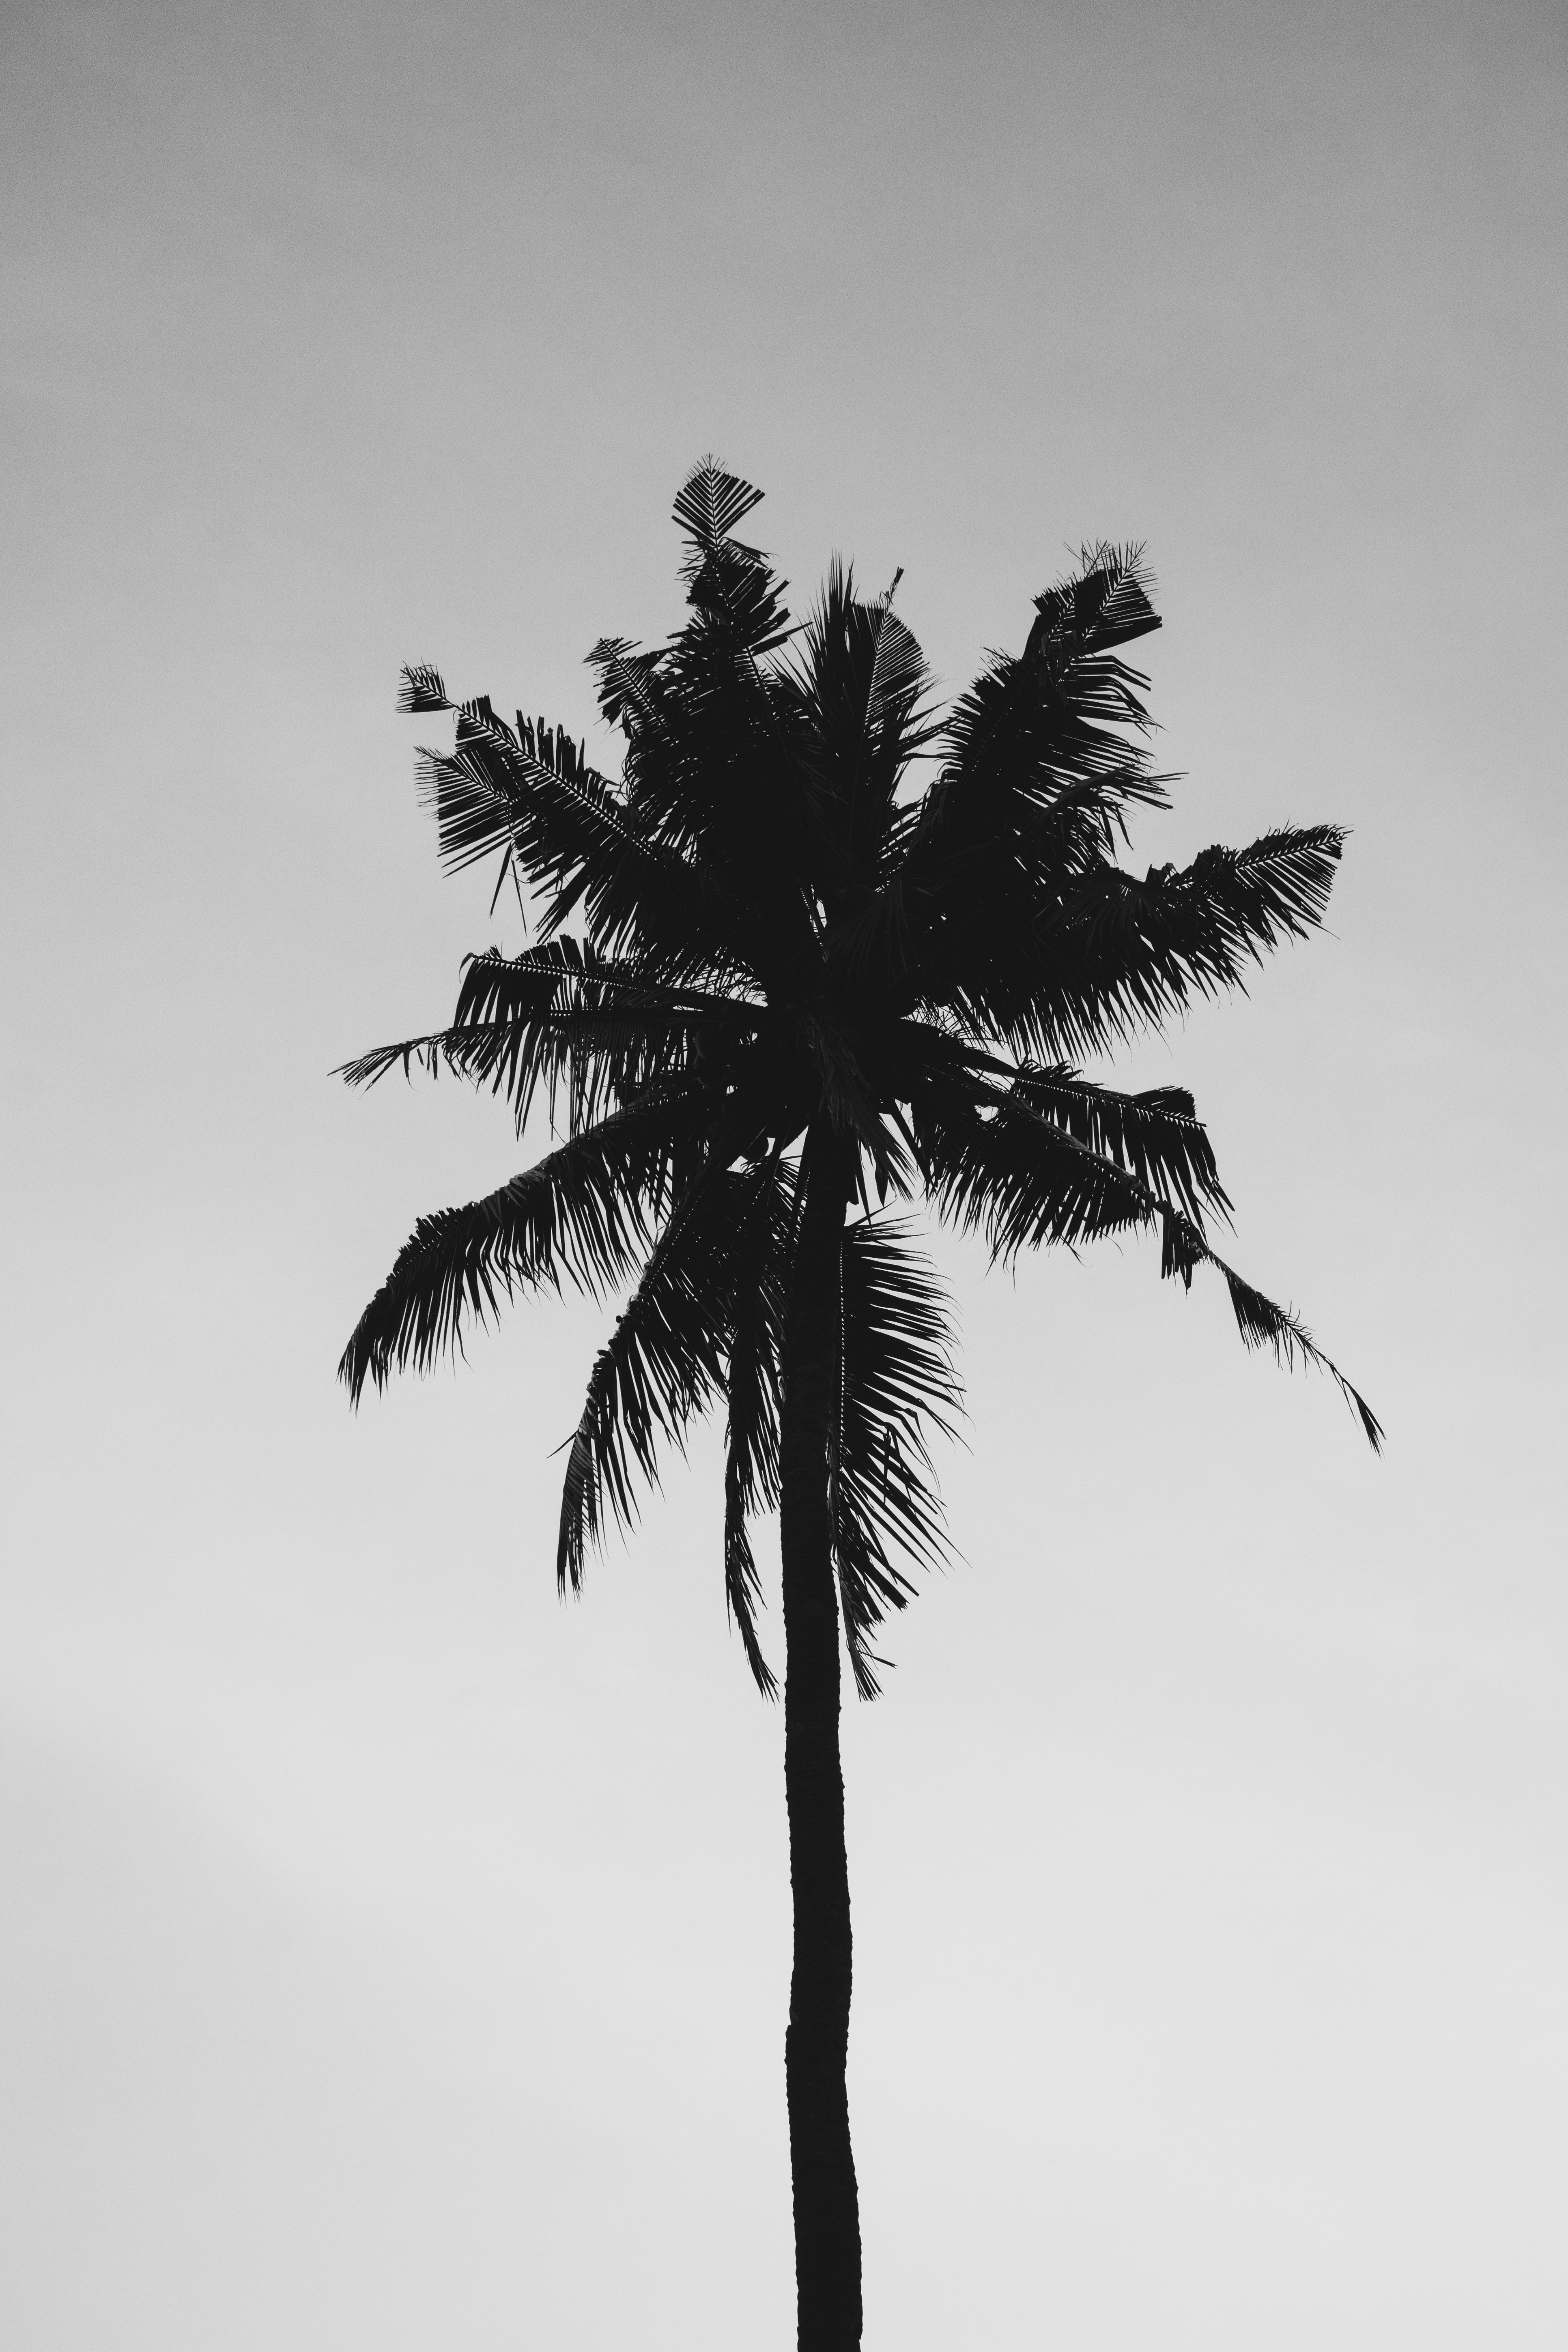 1000 amazing palm tree photos pexels free stock photos